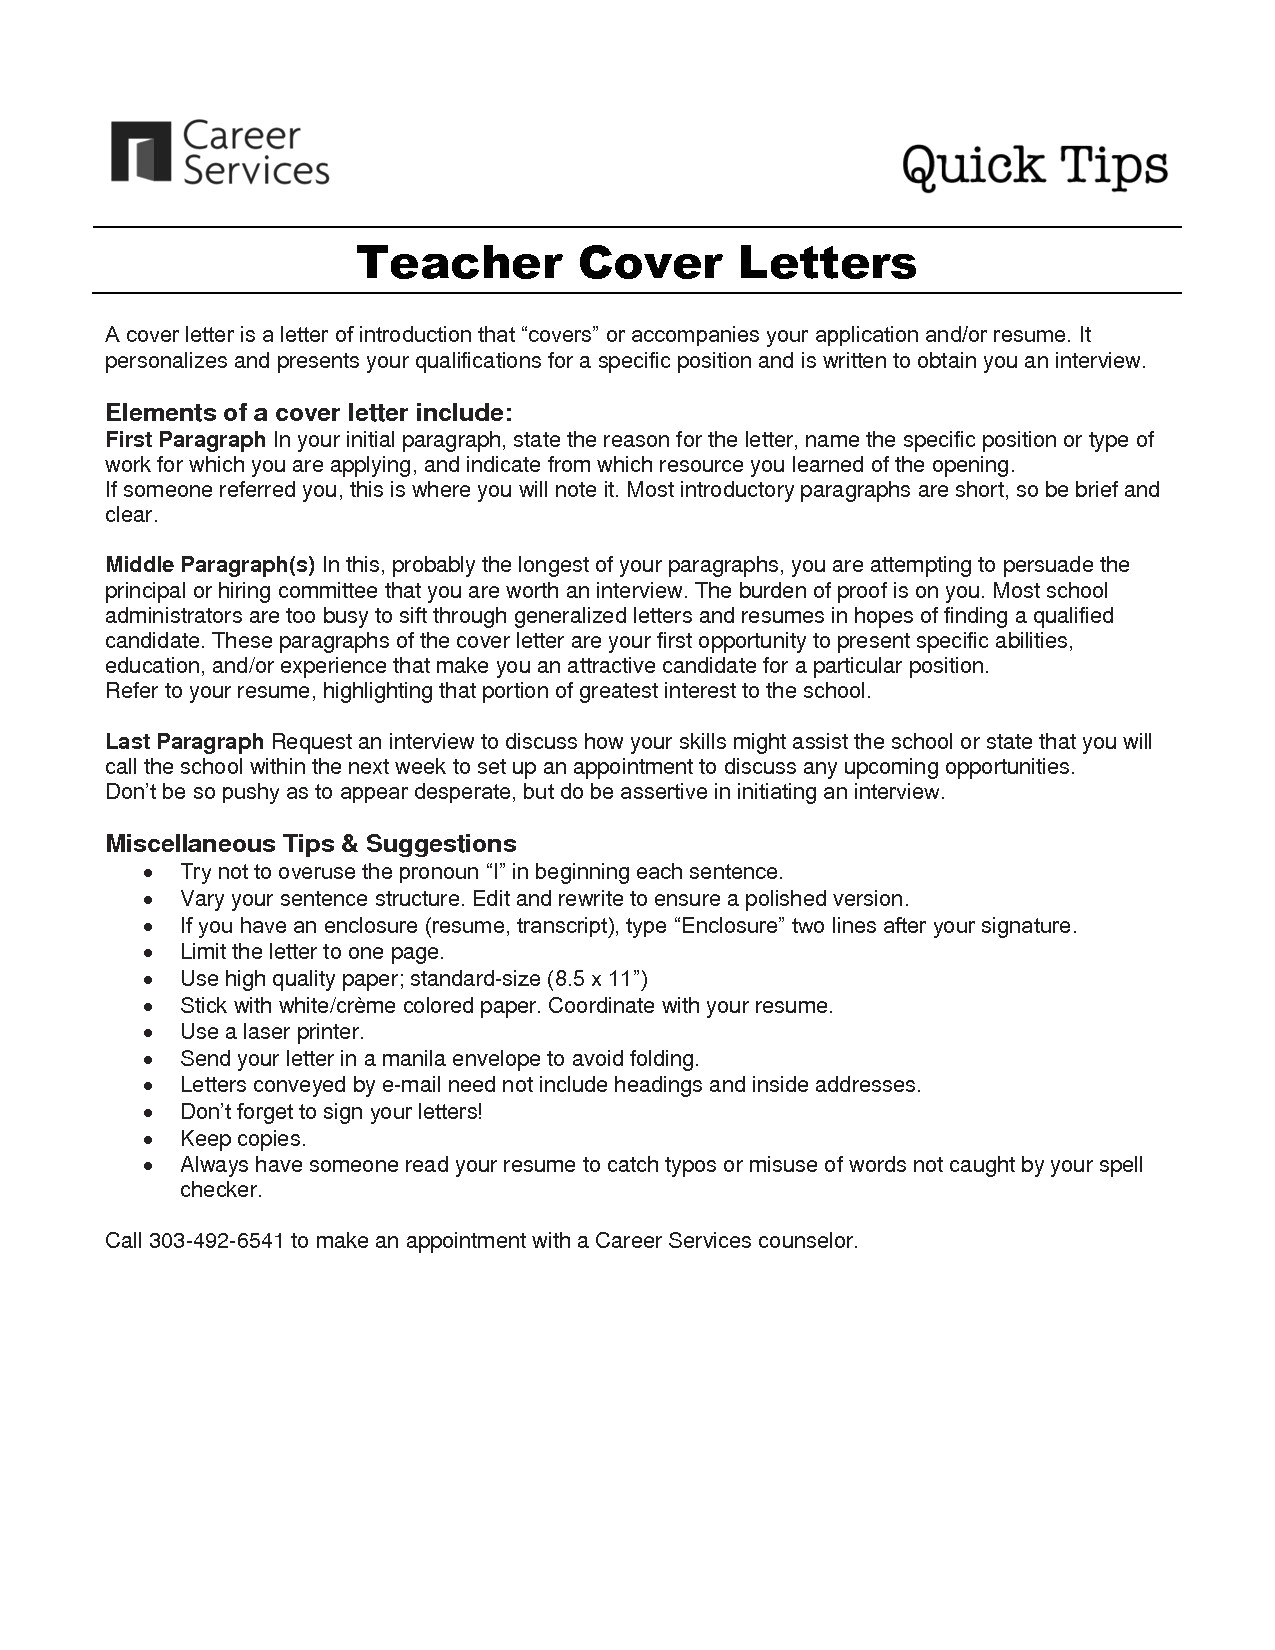 Career Services Resume - 35 Inspirational assembler Job Description for Resume